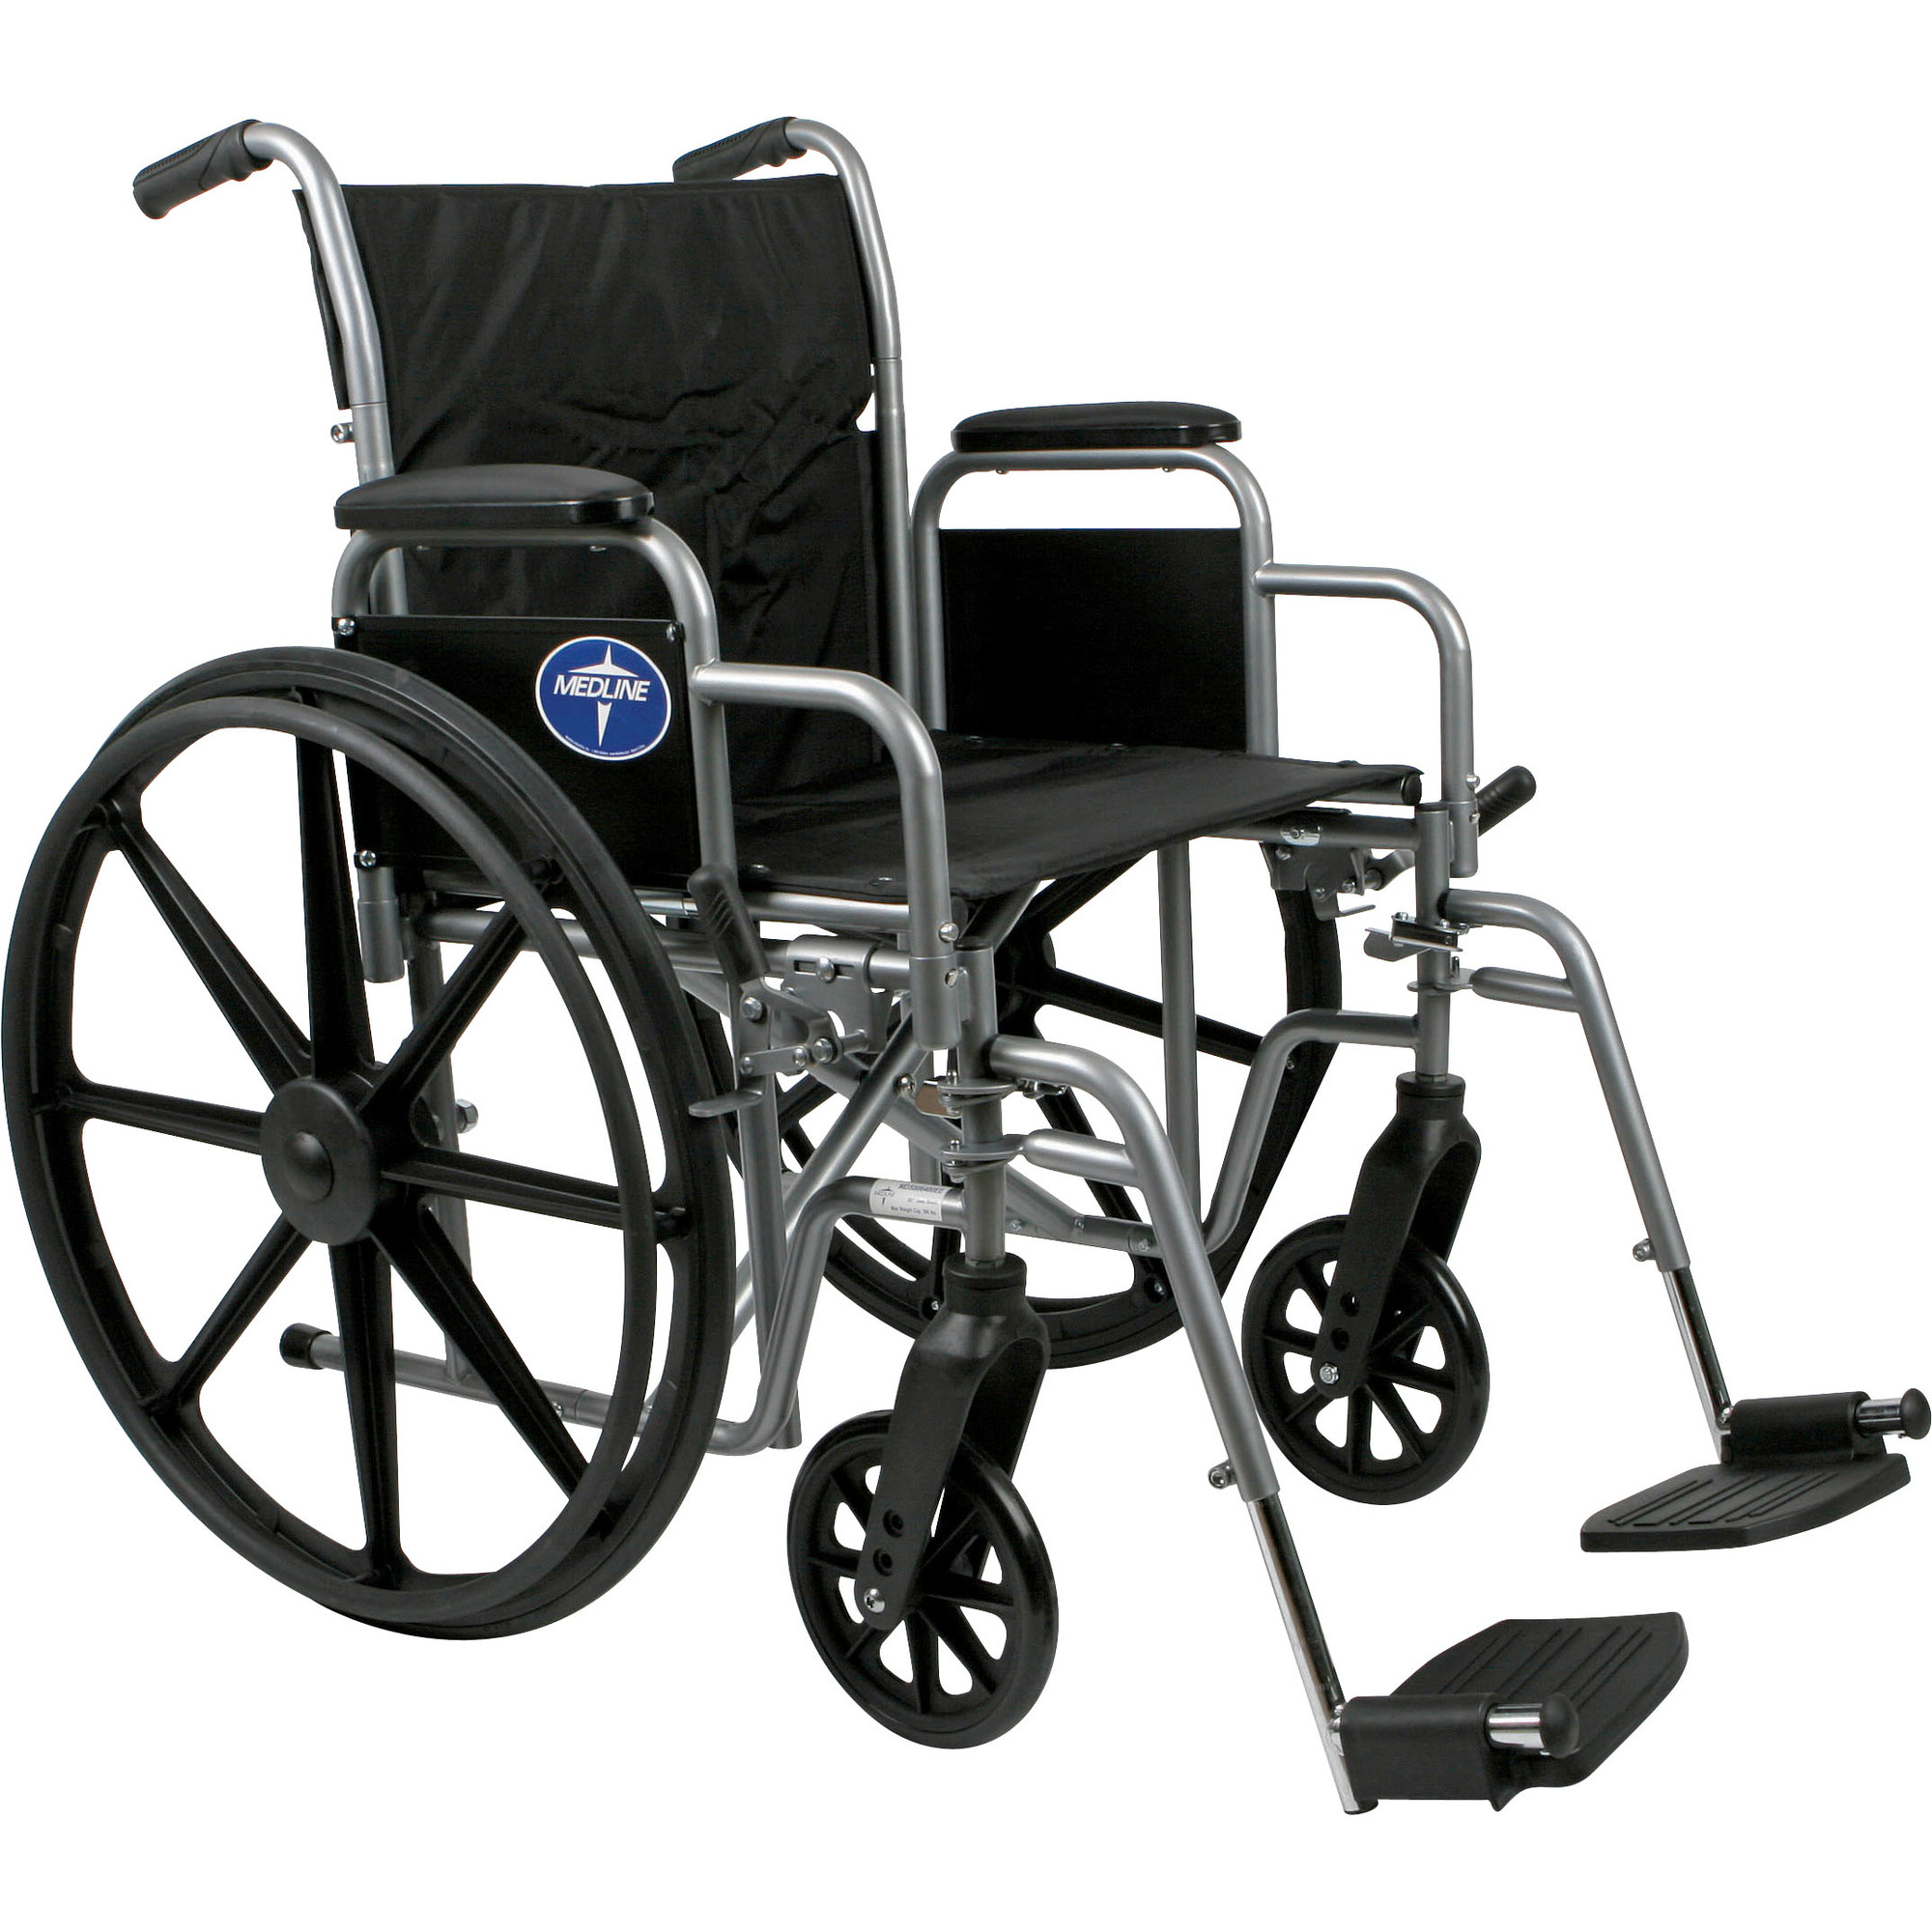 Excel K1 Standard Basic Wheel Chair